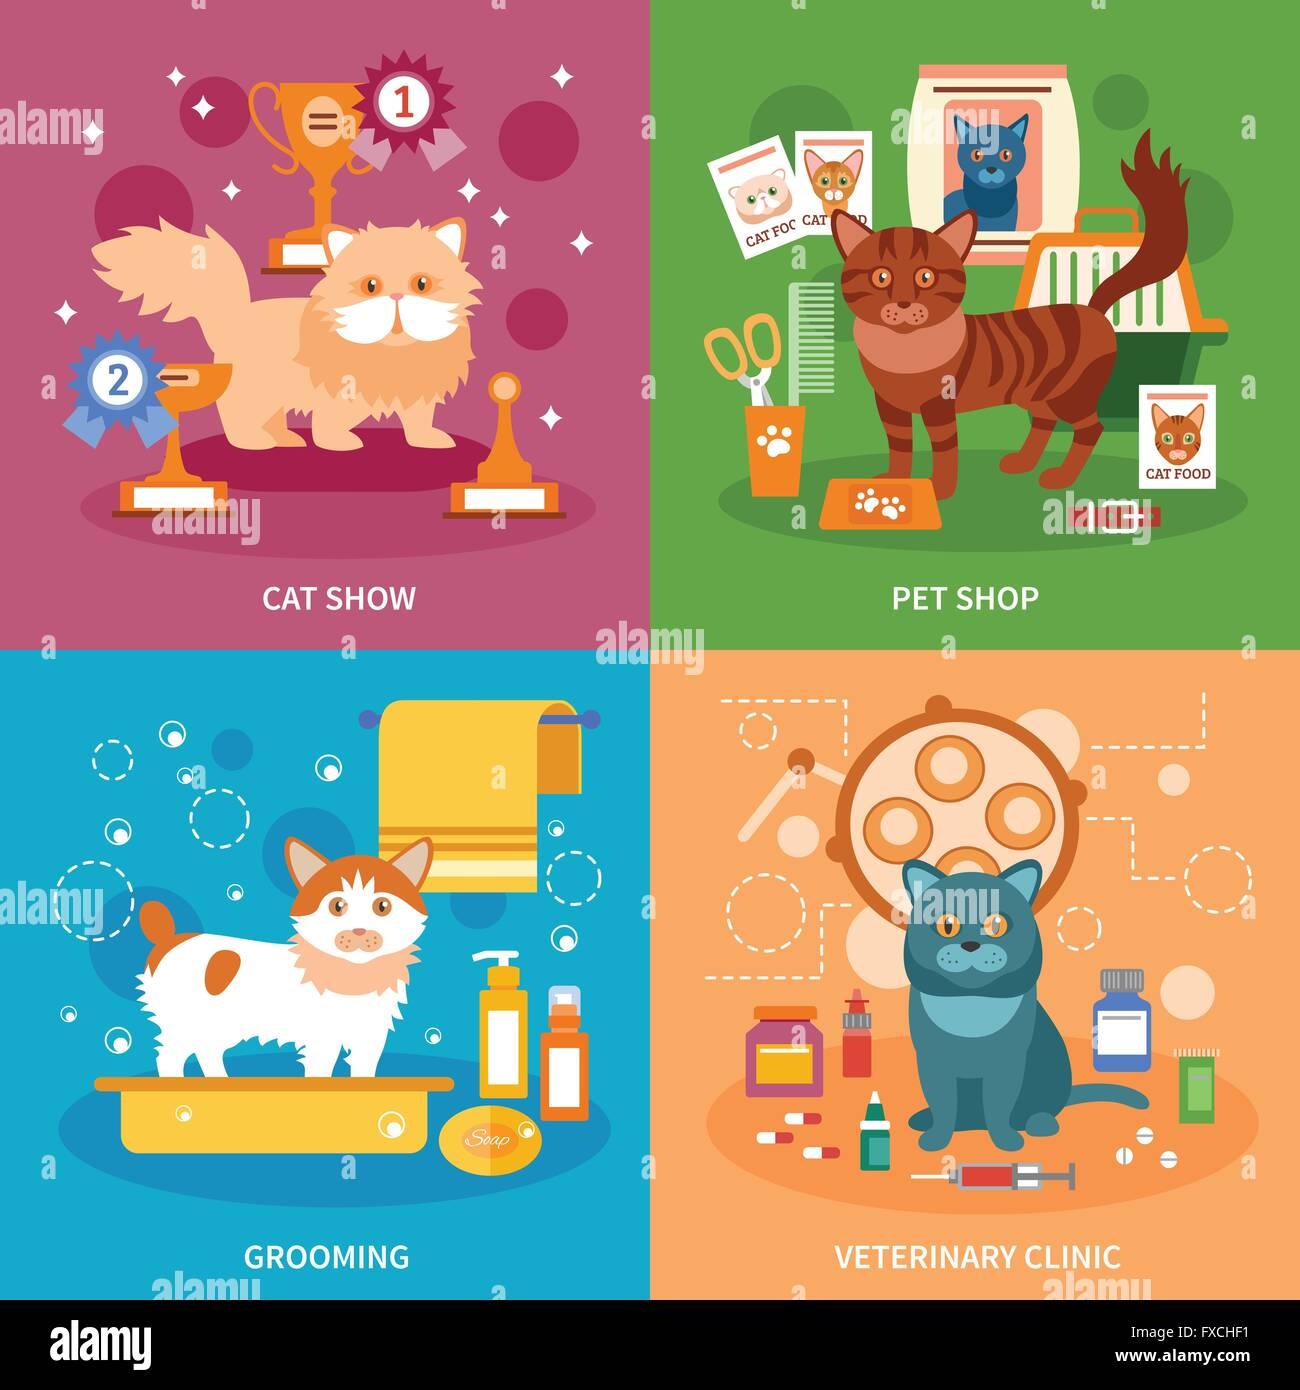 Cats concept set - Stock Vector